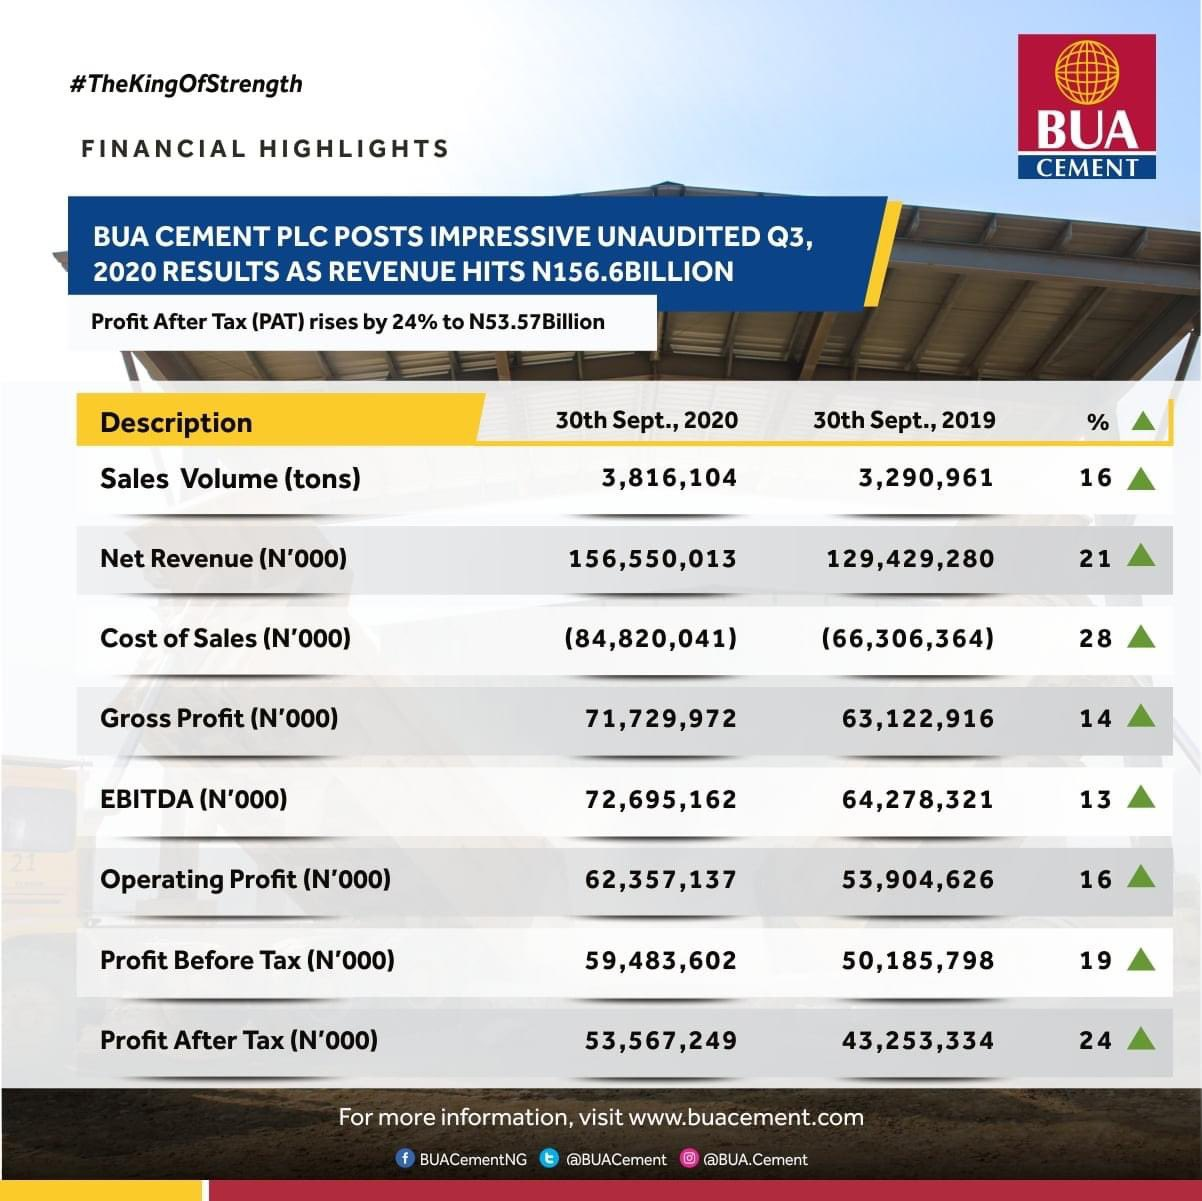 BUA Cement Posts Impressive Q3, 2020 Financial Results As Revenue Hits N156.6Bn